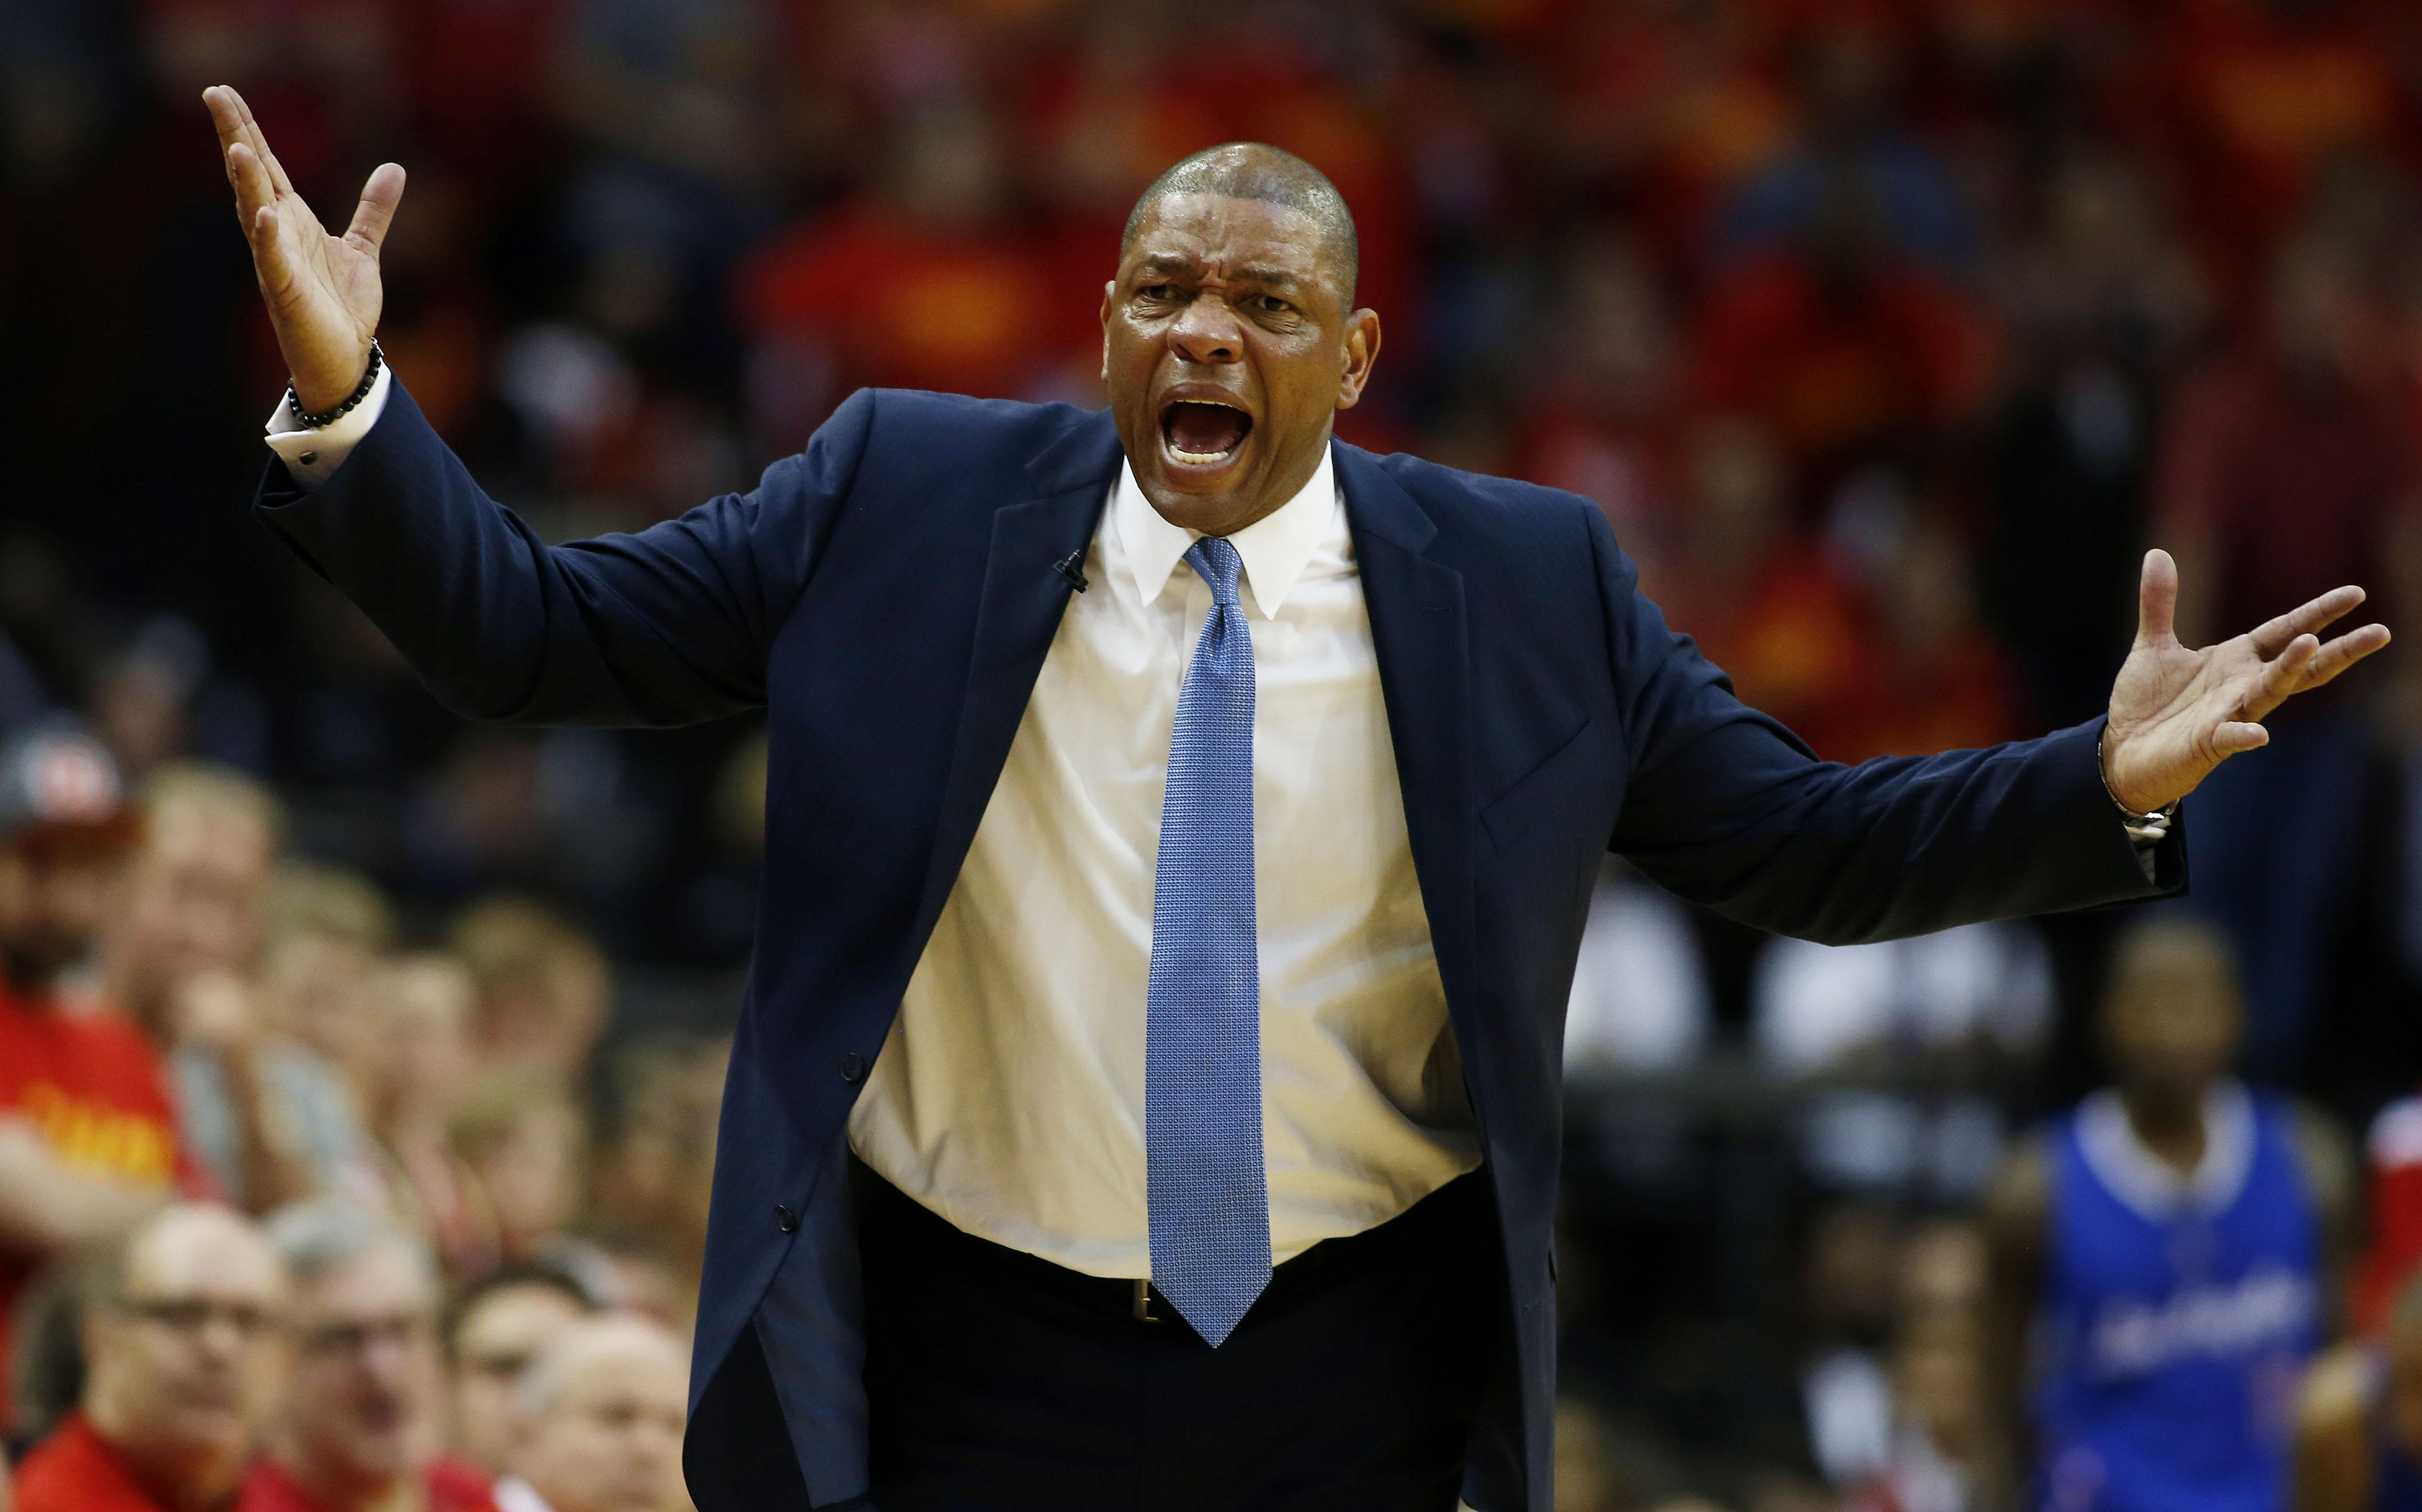 Los Angeles Clippers coach Rivers not in favour of trip to China